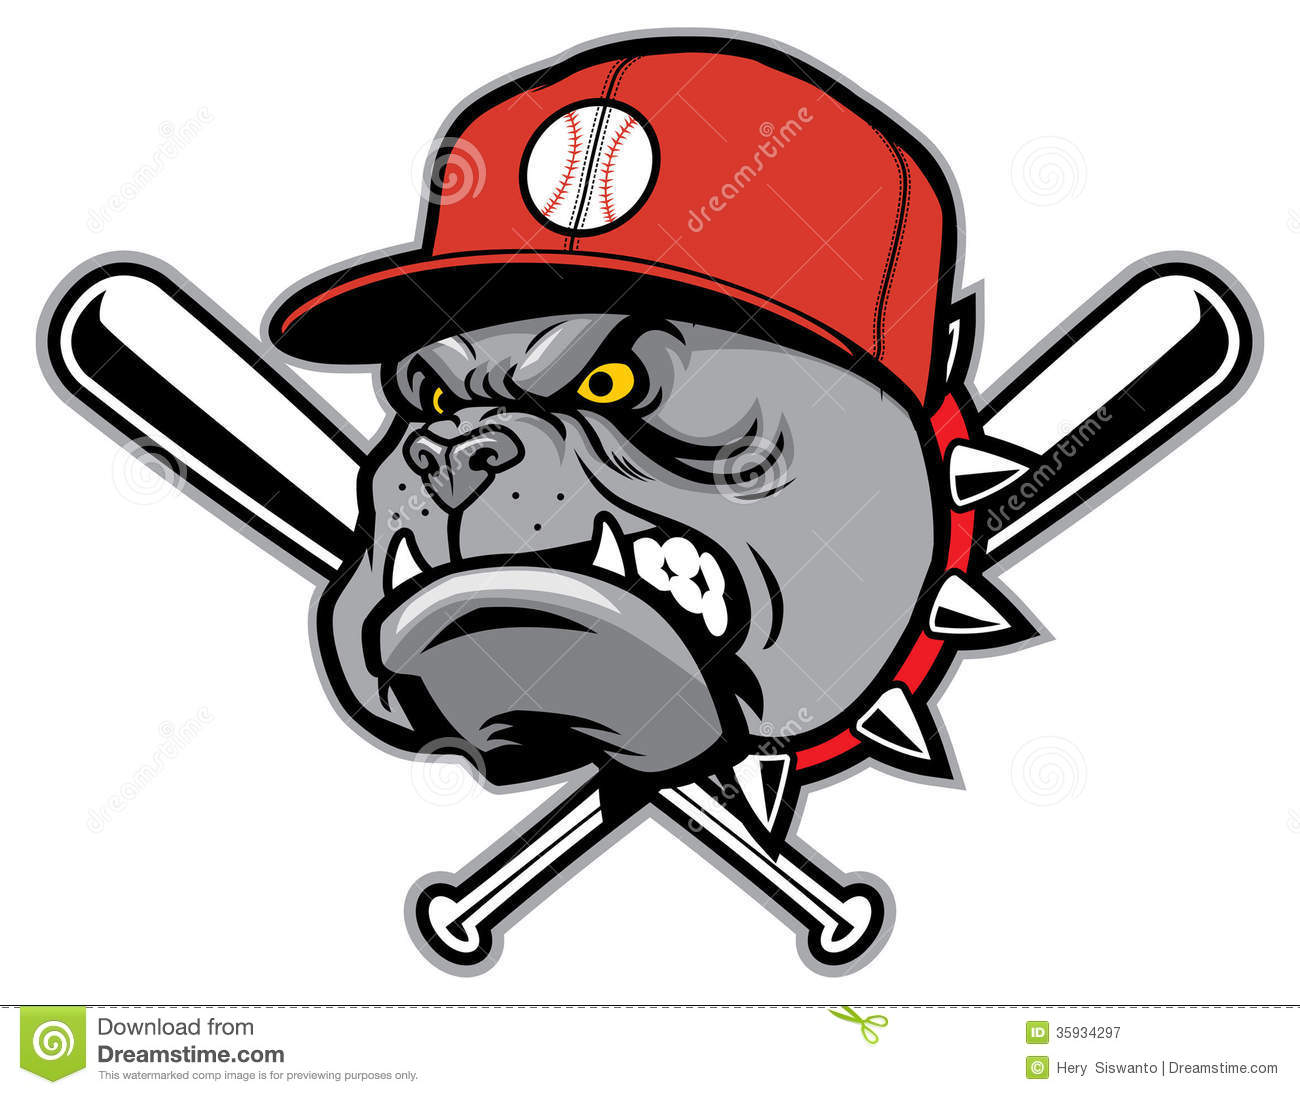 Bulldogs baseball logo - photo#18